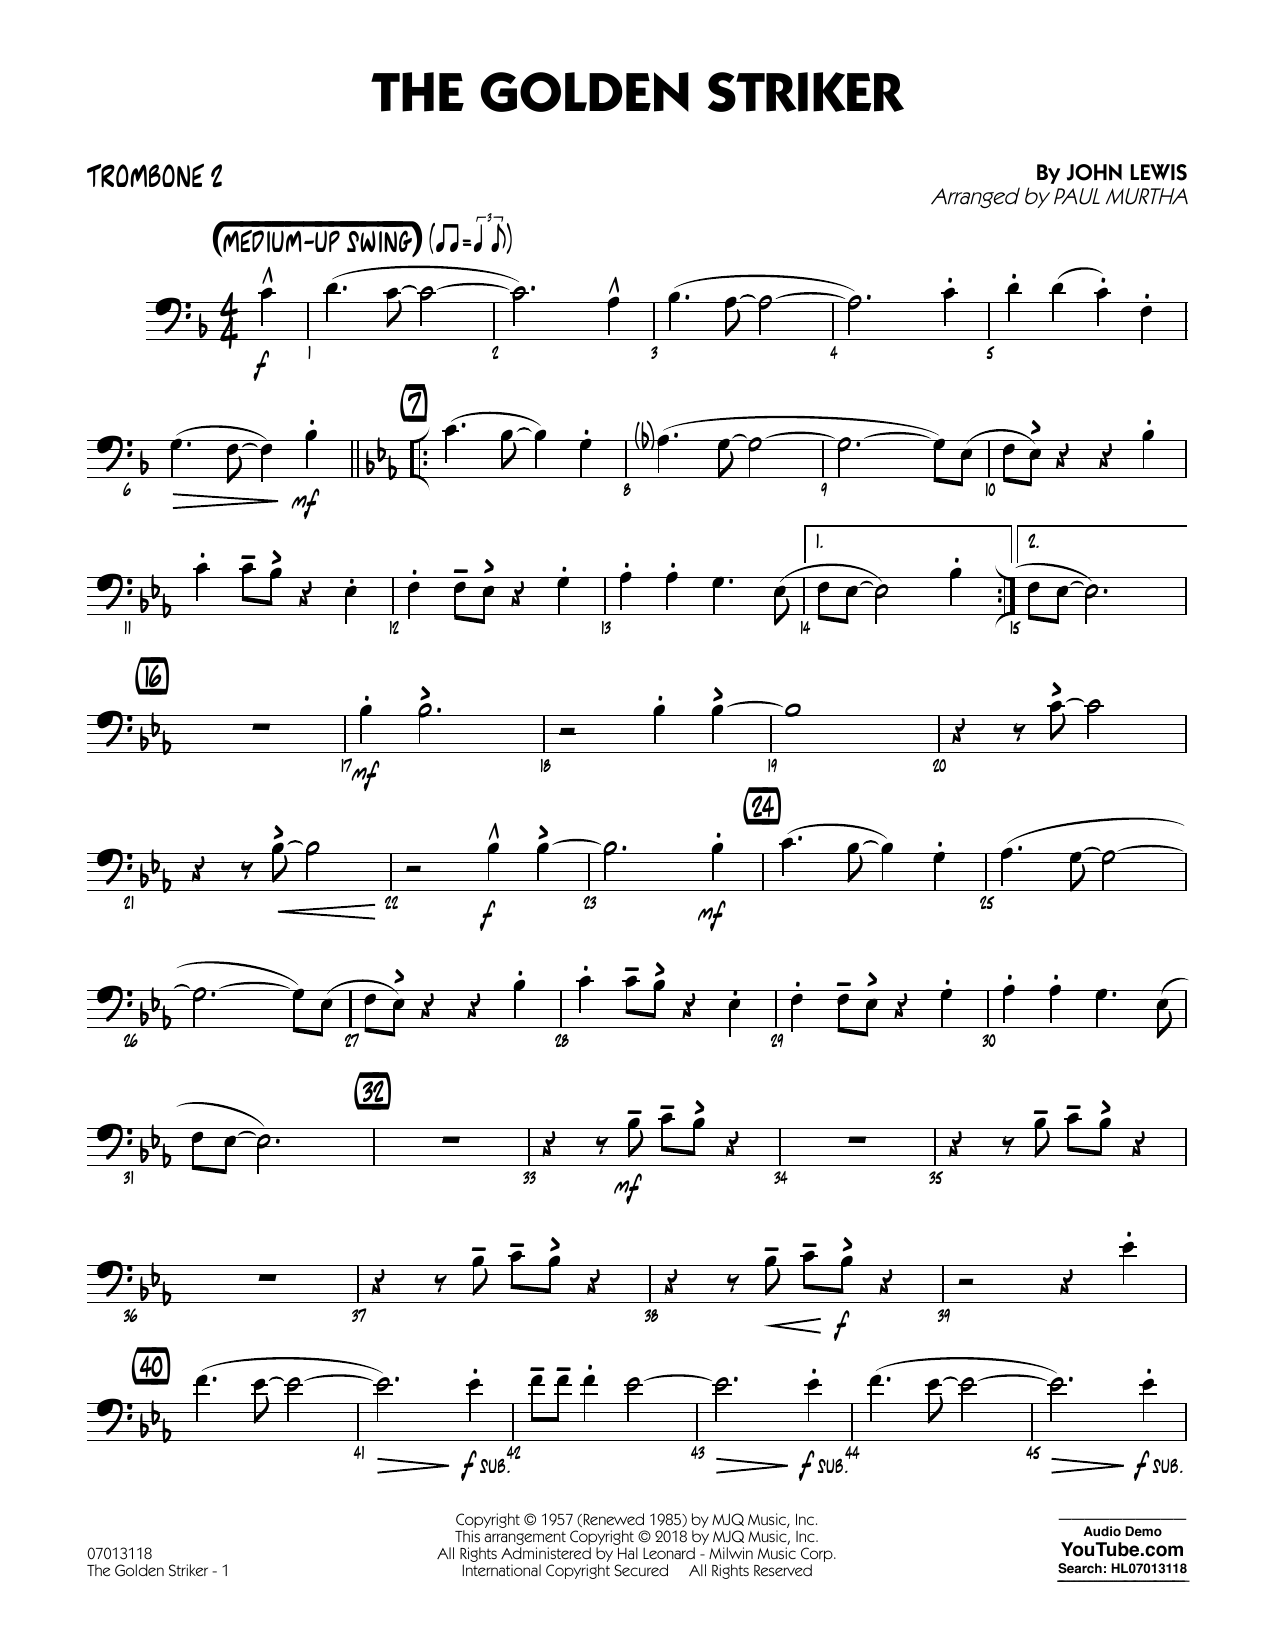 Paul Murtha The Golden Striker - Trombone 2 sheet music notes and chords. Download Printable PDF.